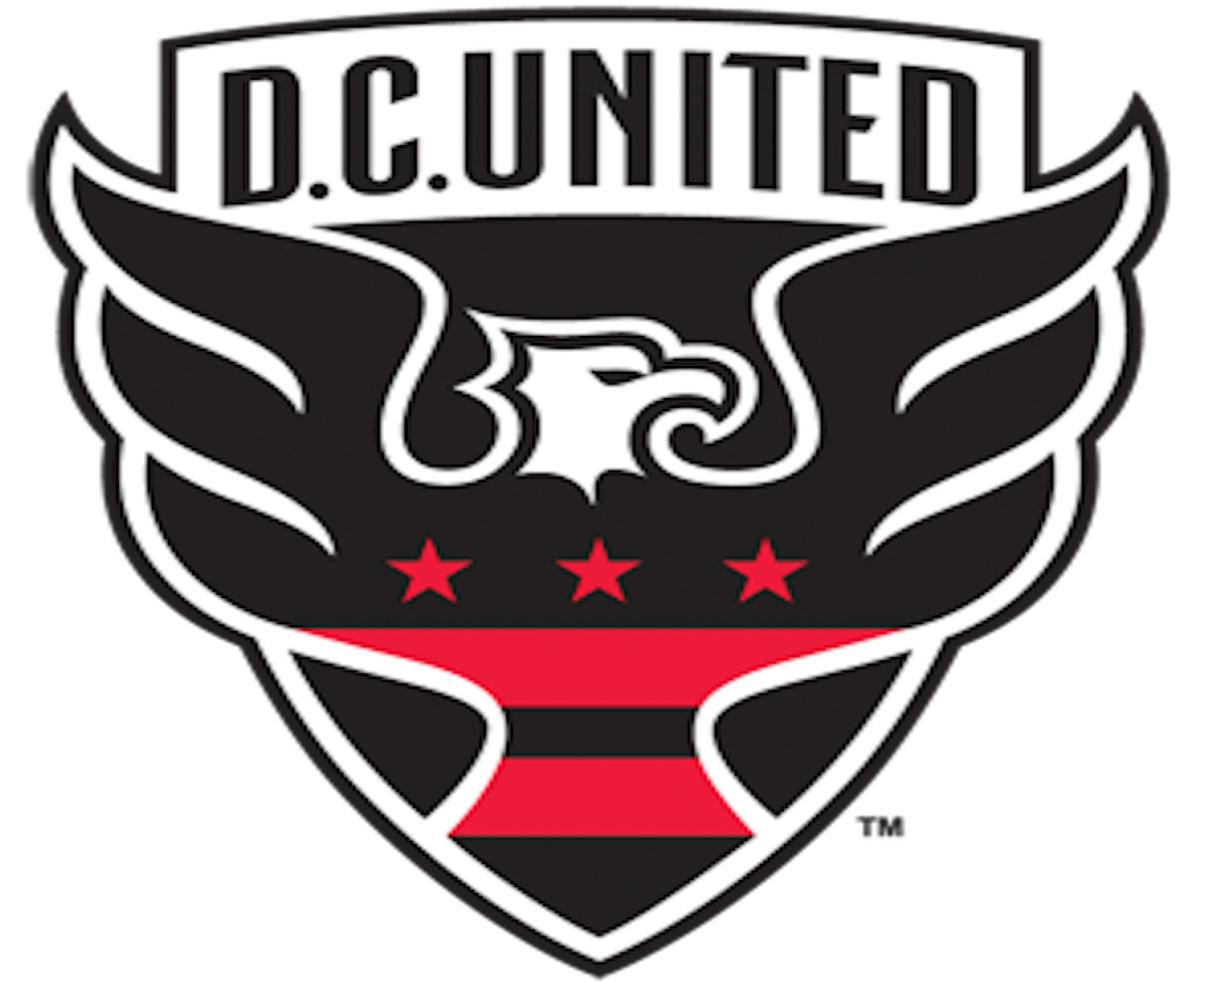 D.C. United Soccer Camp at Morven Park in Leesburg, VA